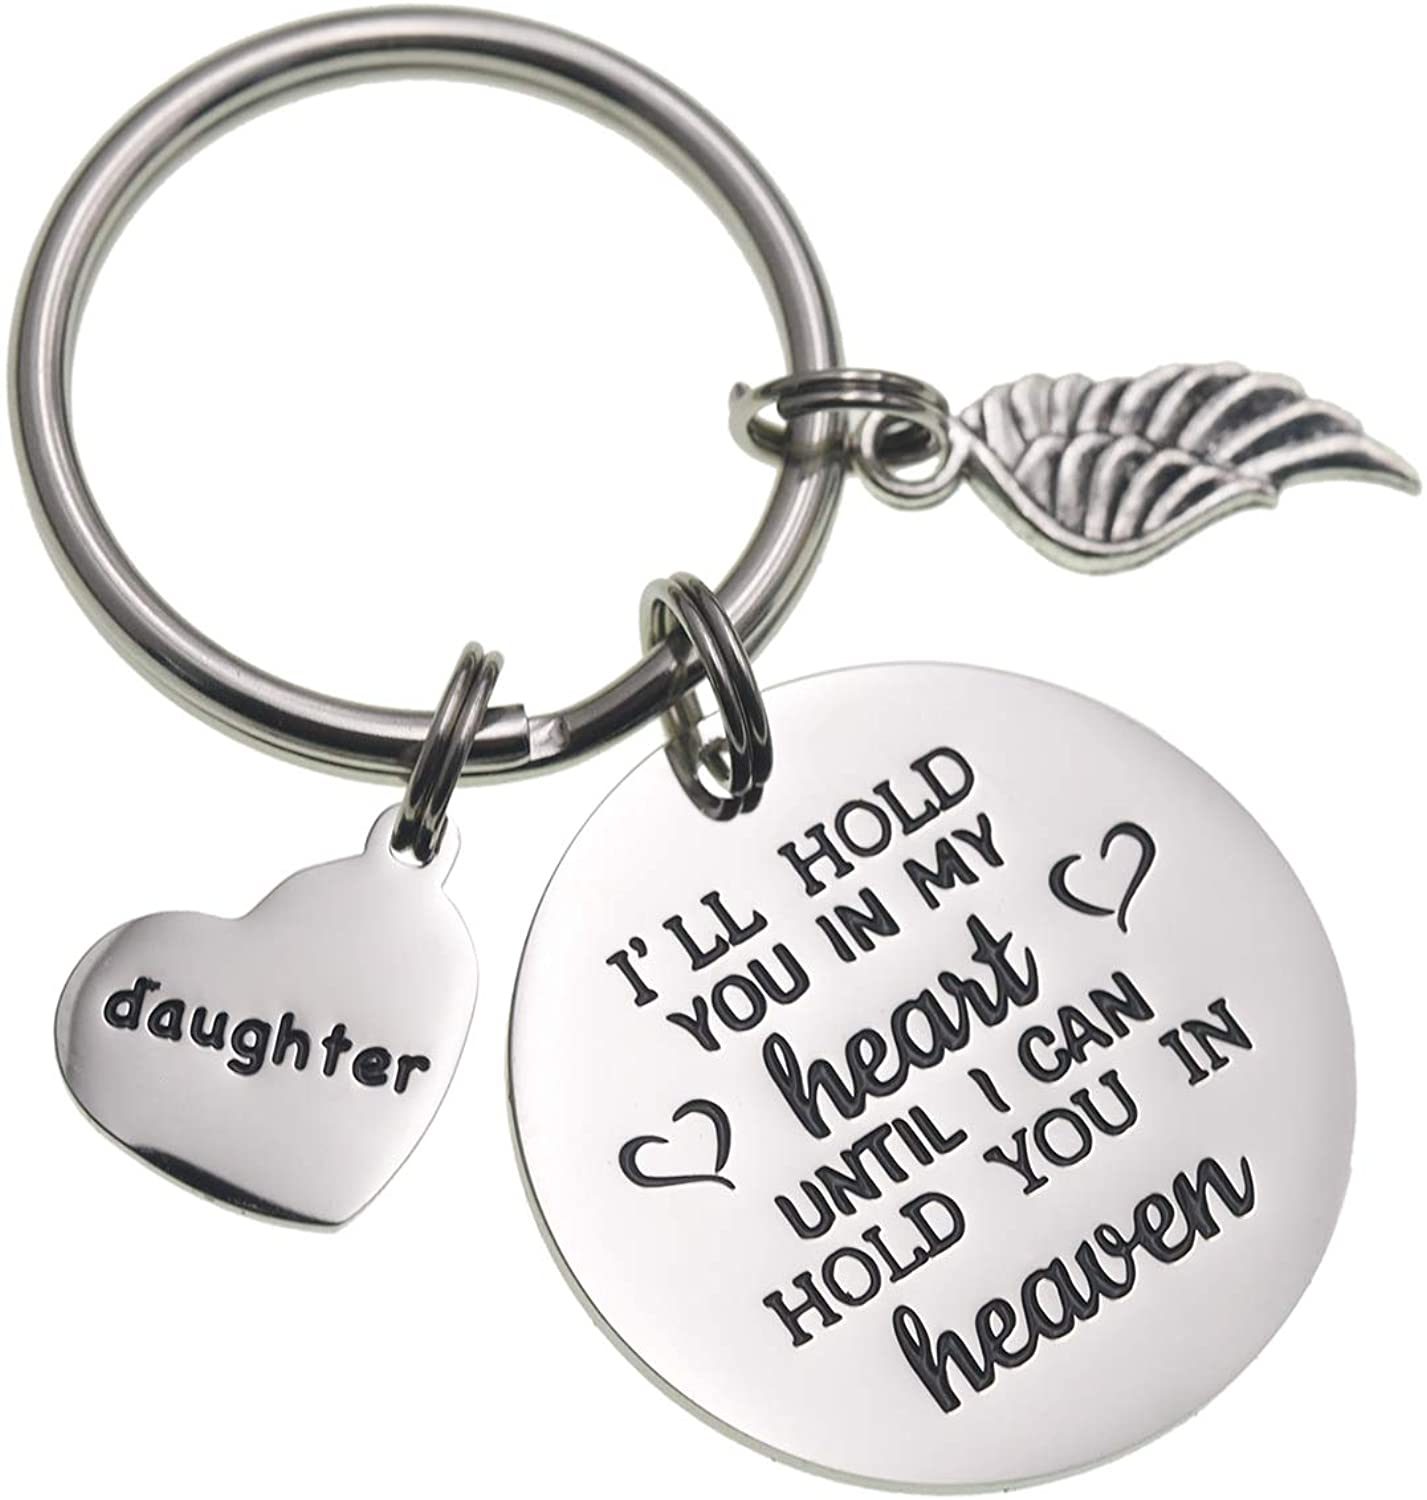 Memorial Keychain I'll Hold You in My Heart Until I Can Hold You in Heaven Sympathy Jewelry Loss Jewelry Gifts in Memory of Loved One